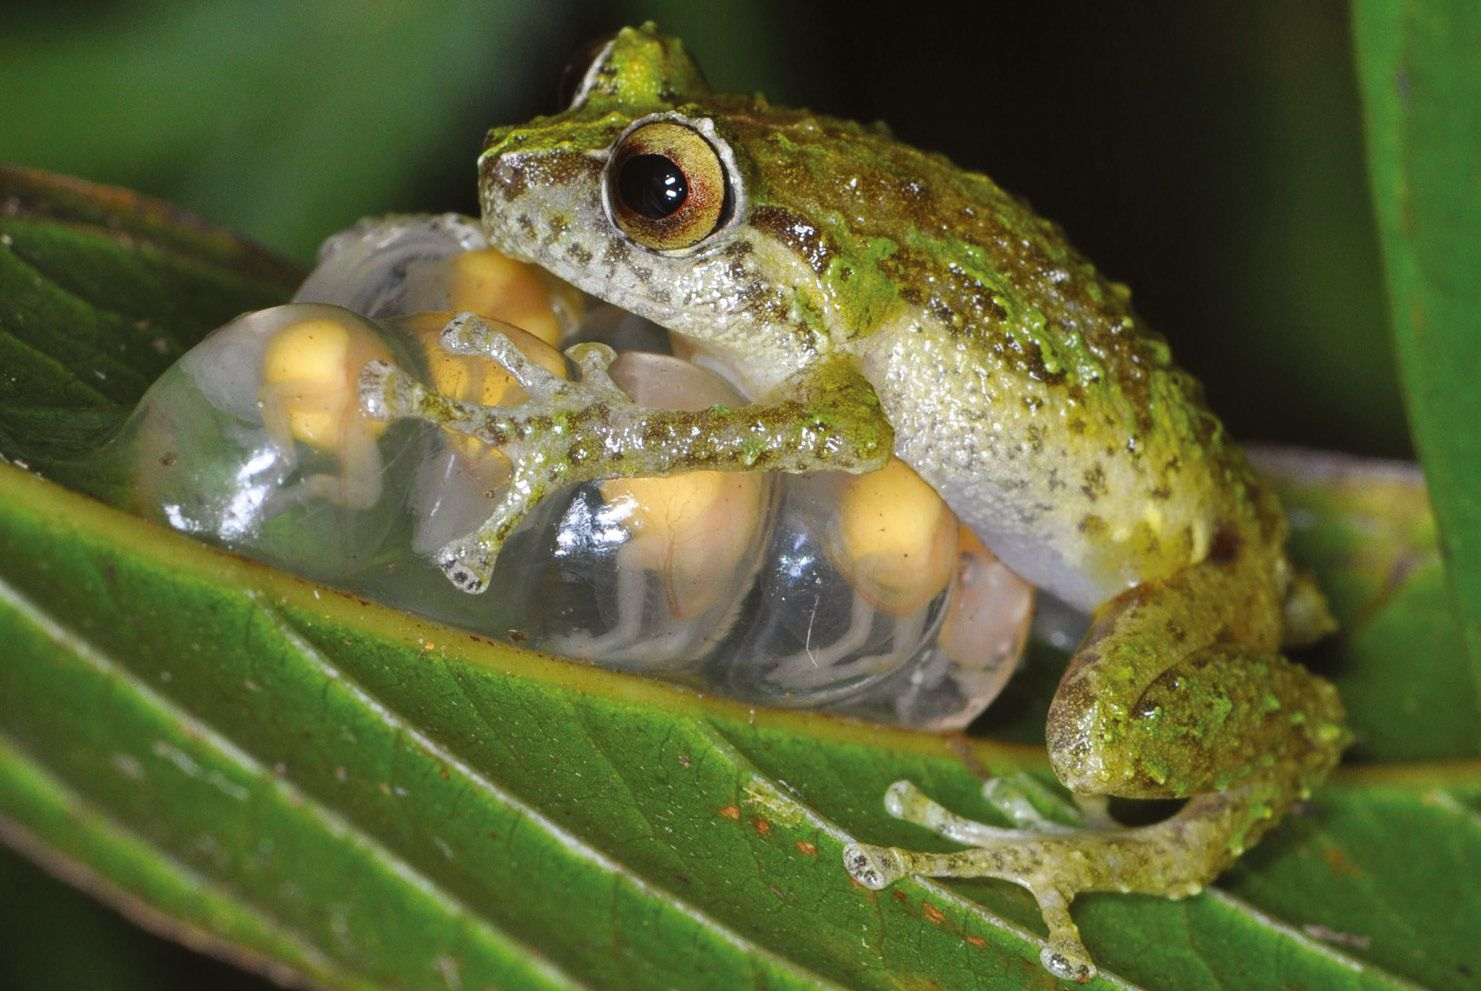 This island is many frogs' last hope for surviving the world's deadliest pathogen